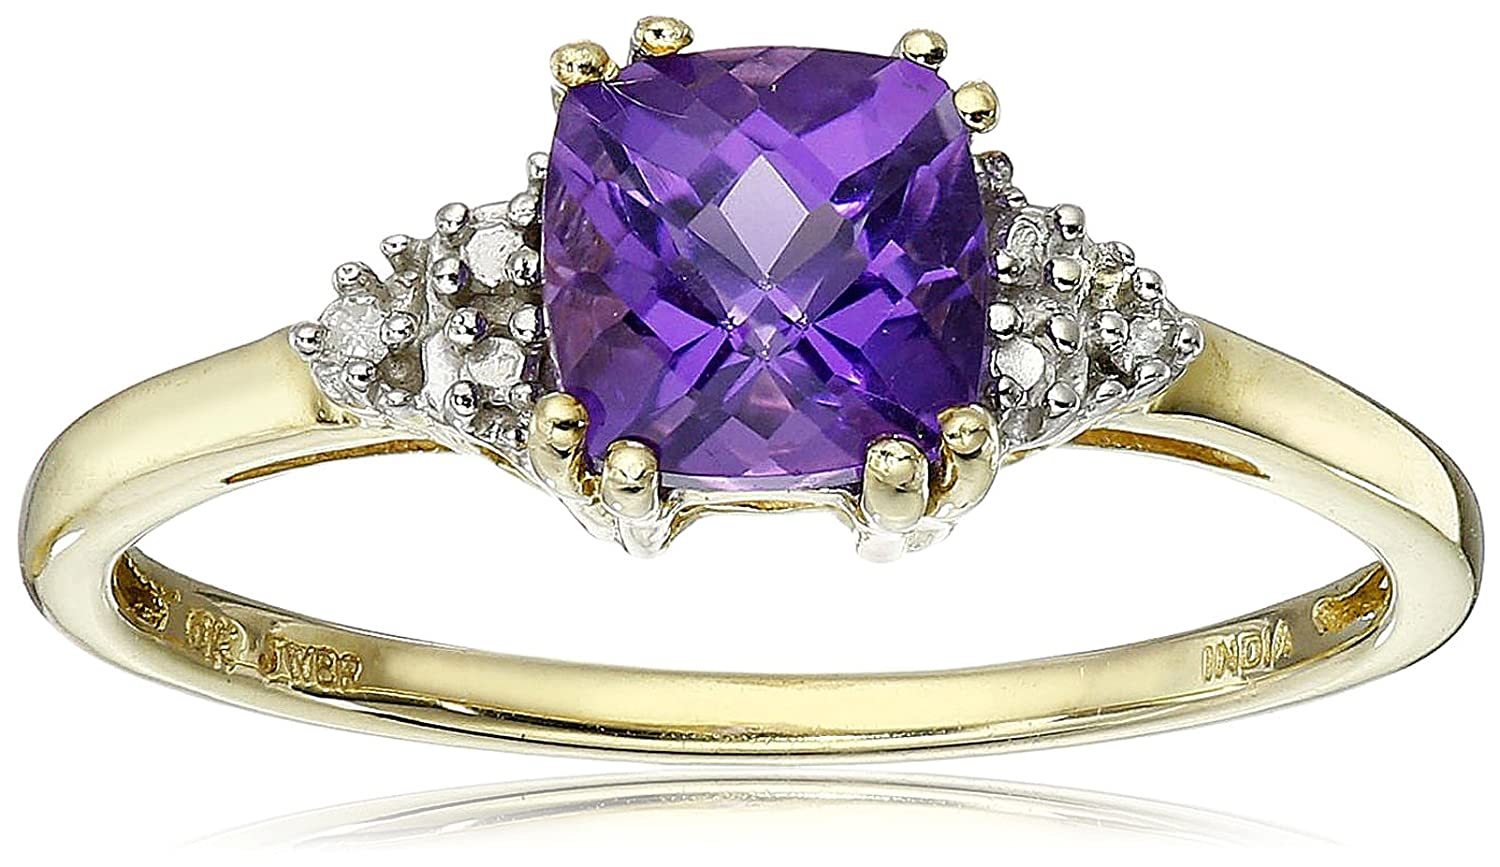 Amazon.com: 10K Yellow Gold Amethyst Cushion with Diamond February  Birthstone Ring, Size 7: Jewelry